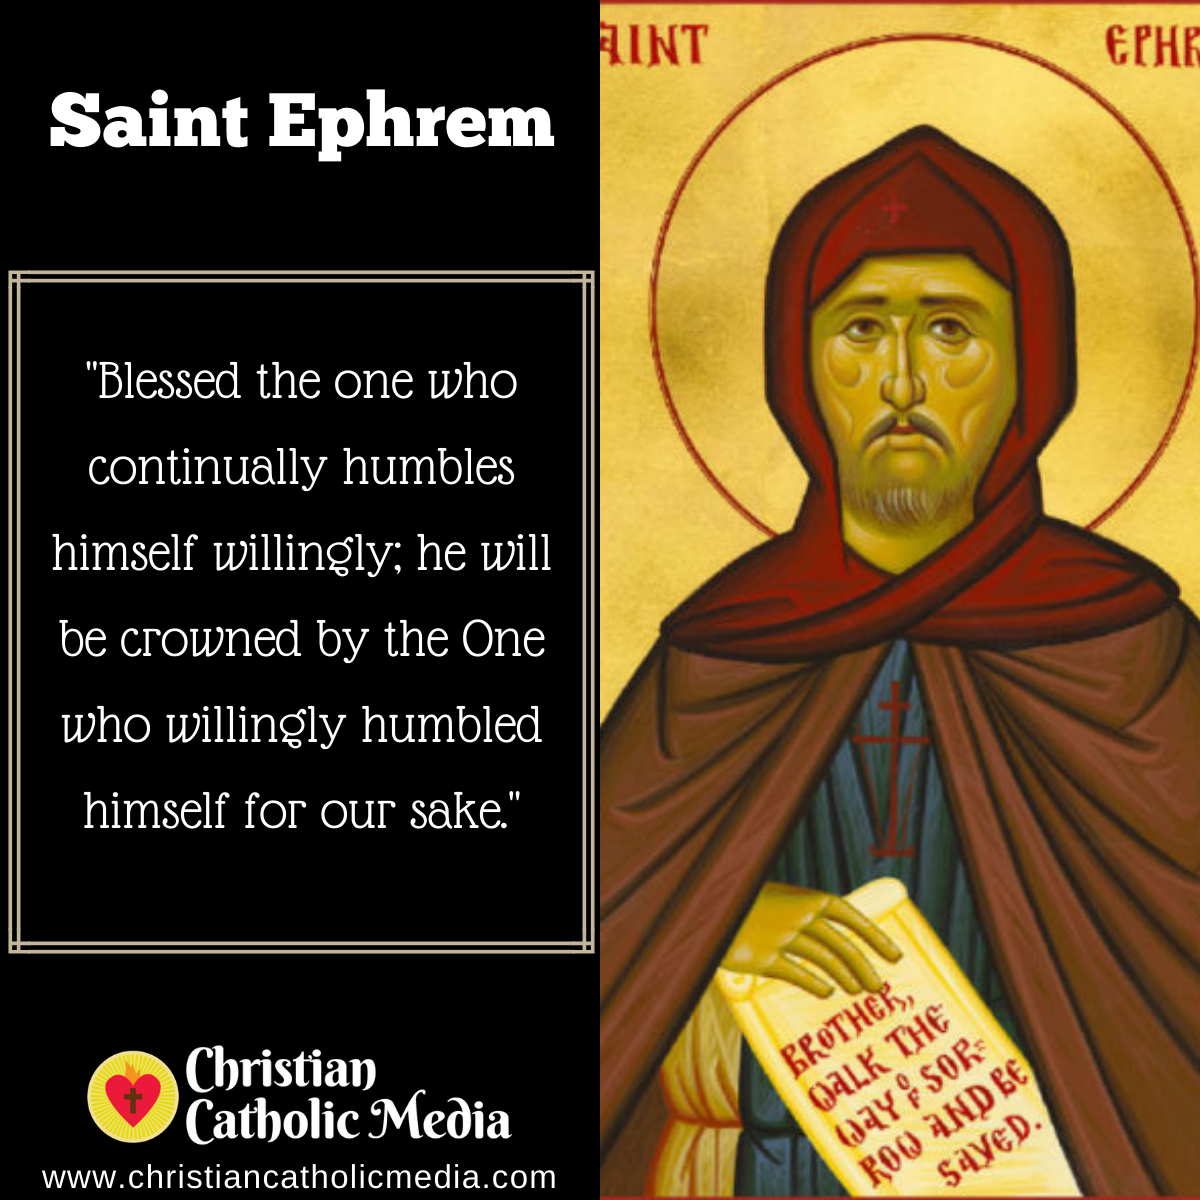 St. Ephrem - Tuesday June 9, 2020